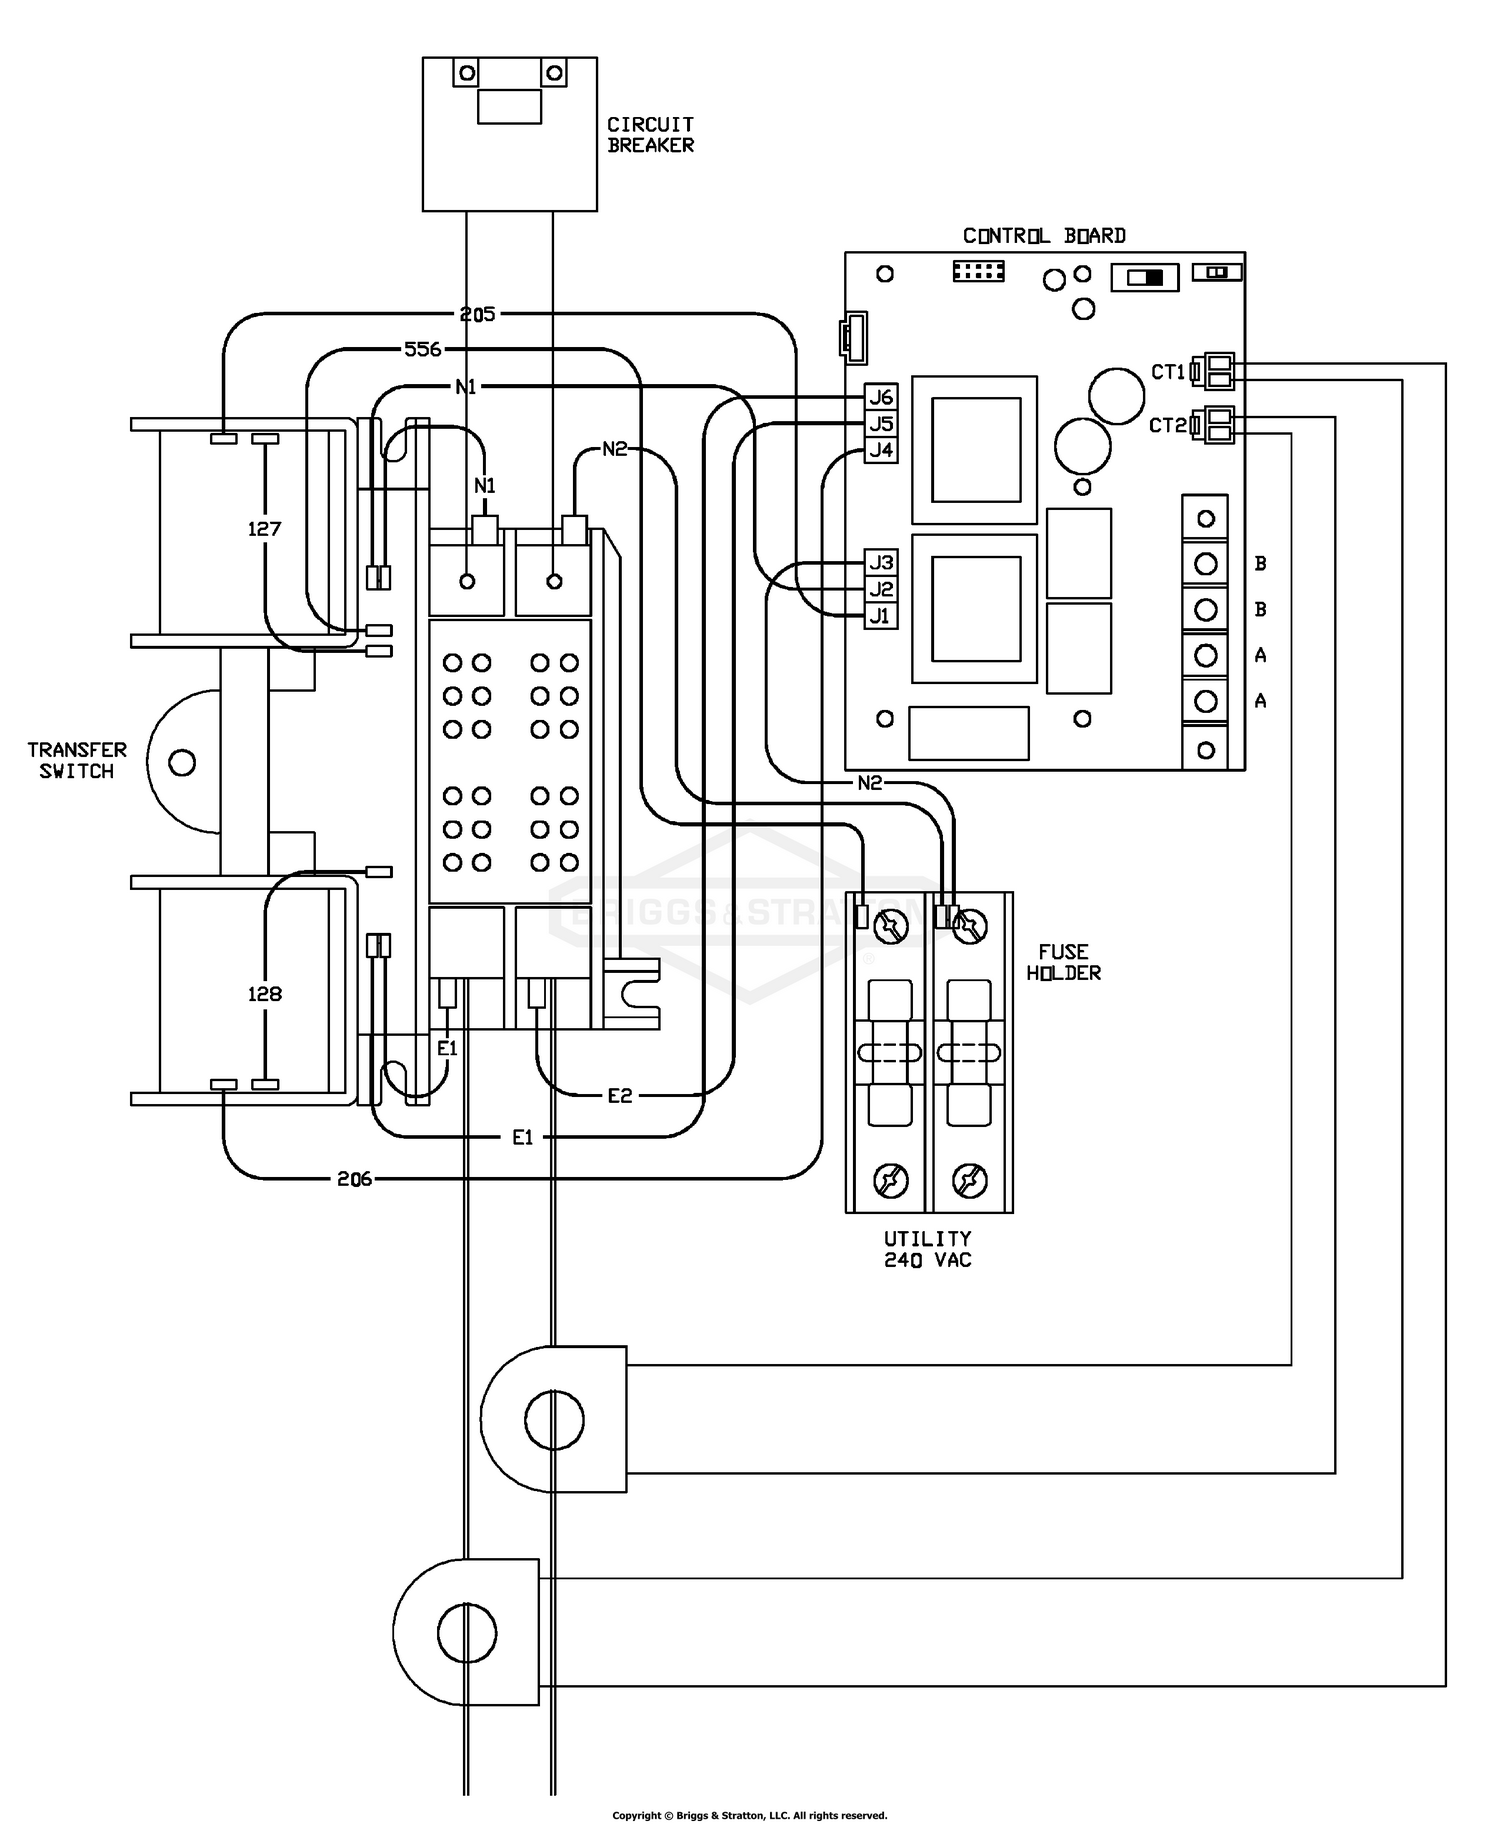 200 Automatic Transfer Switch Wiring Diagram | Wiring Liry on